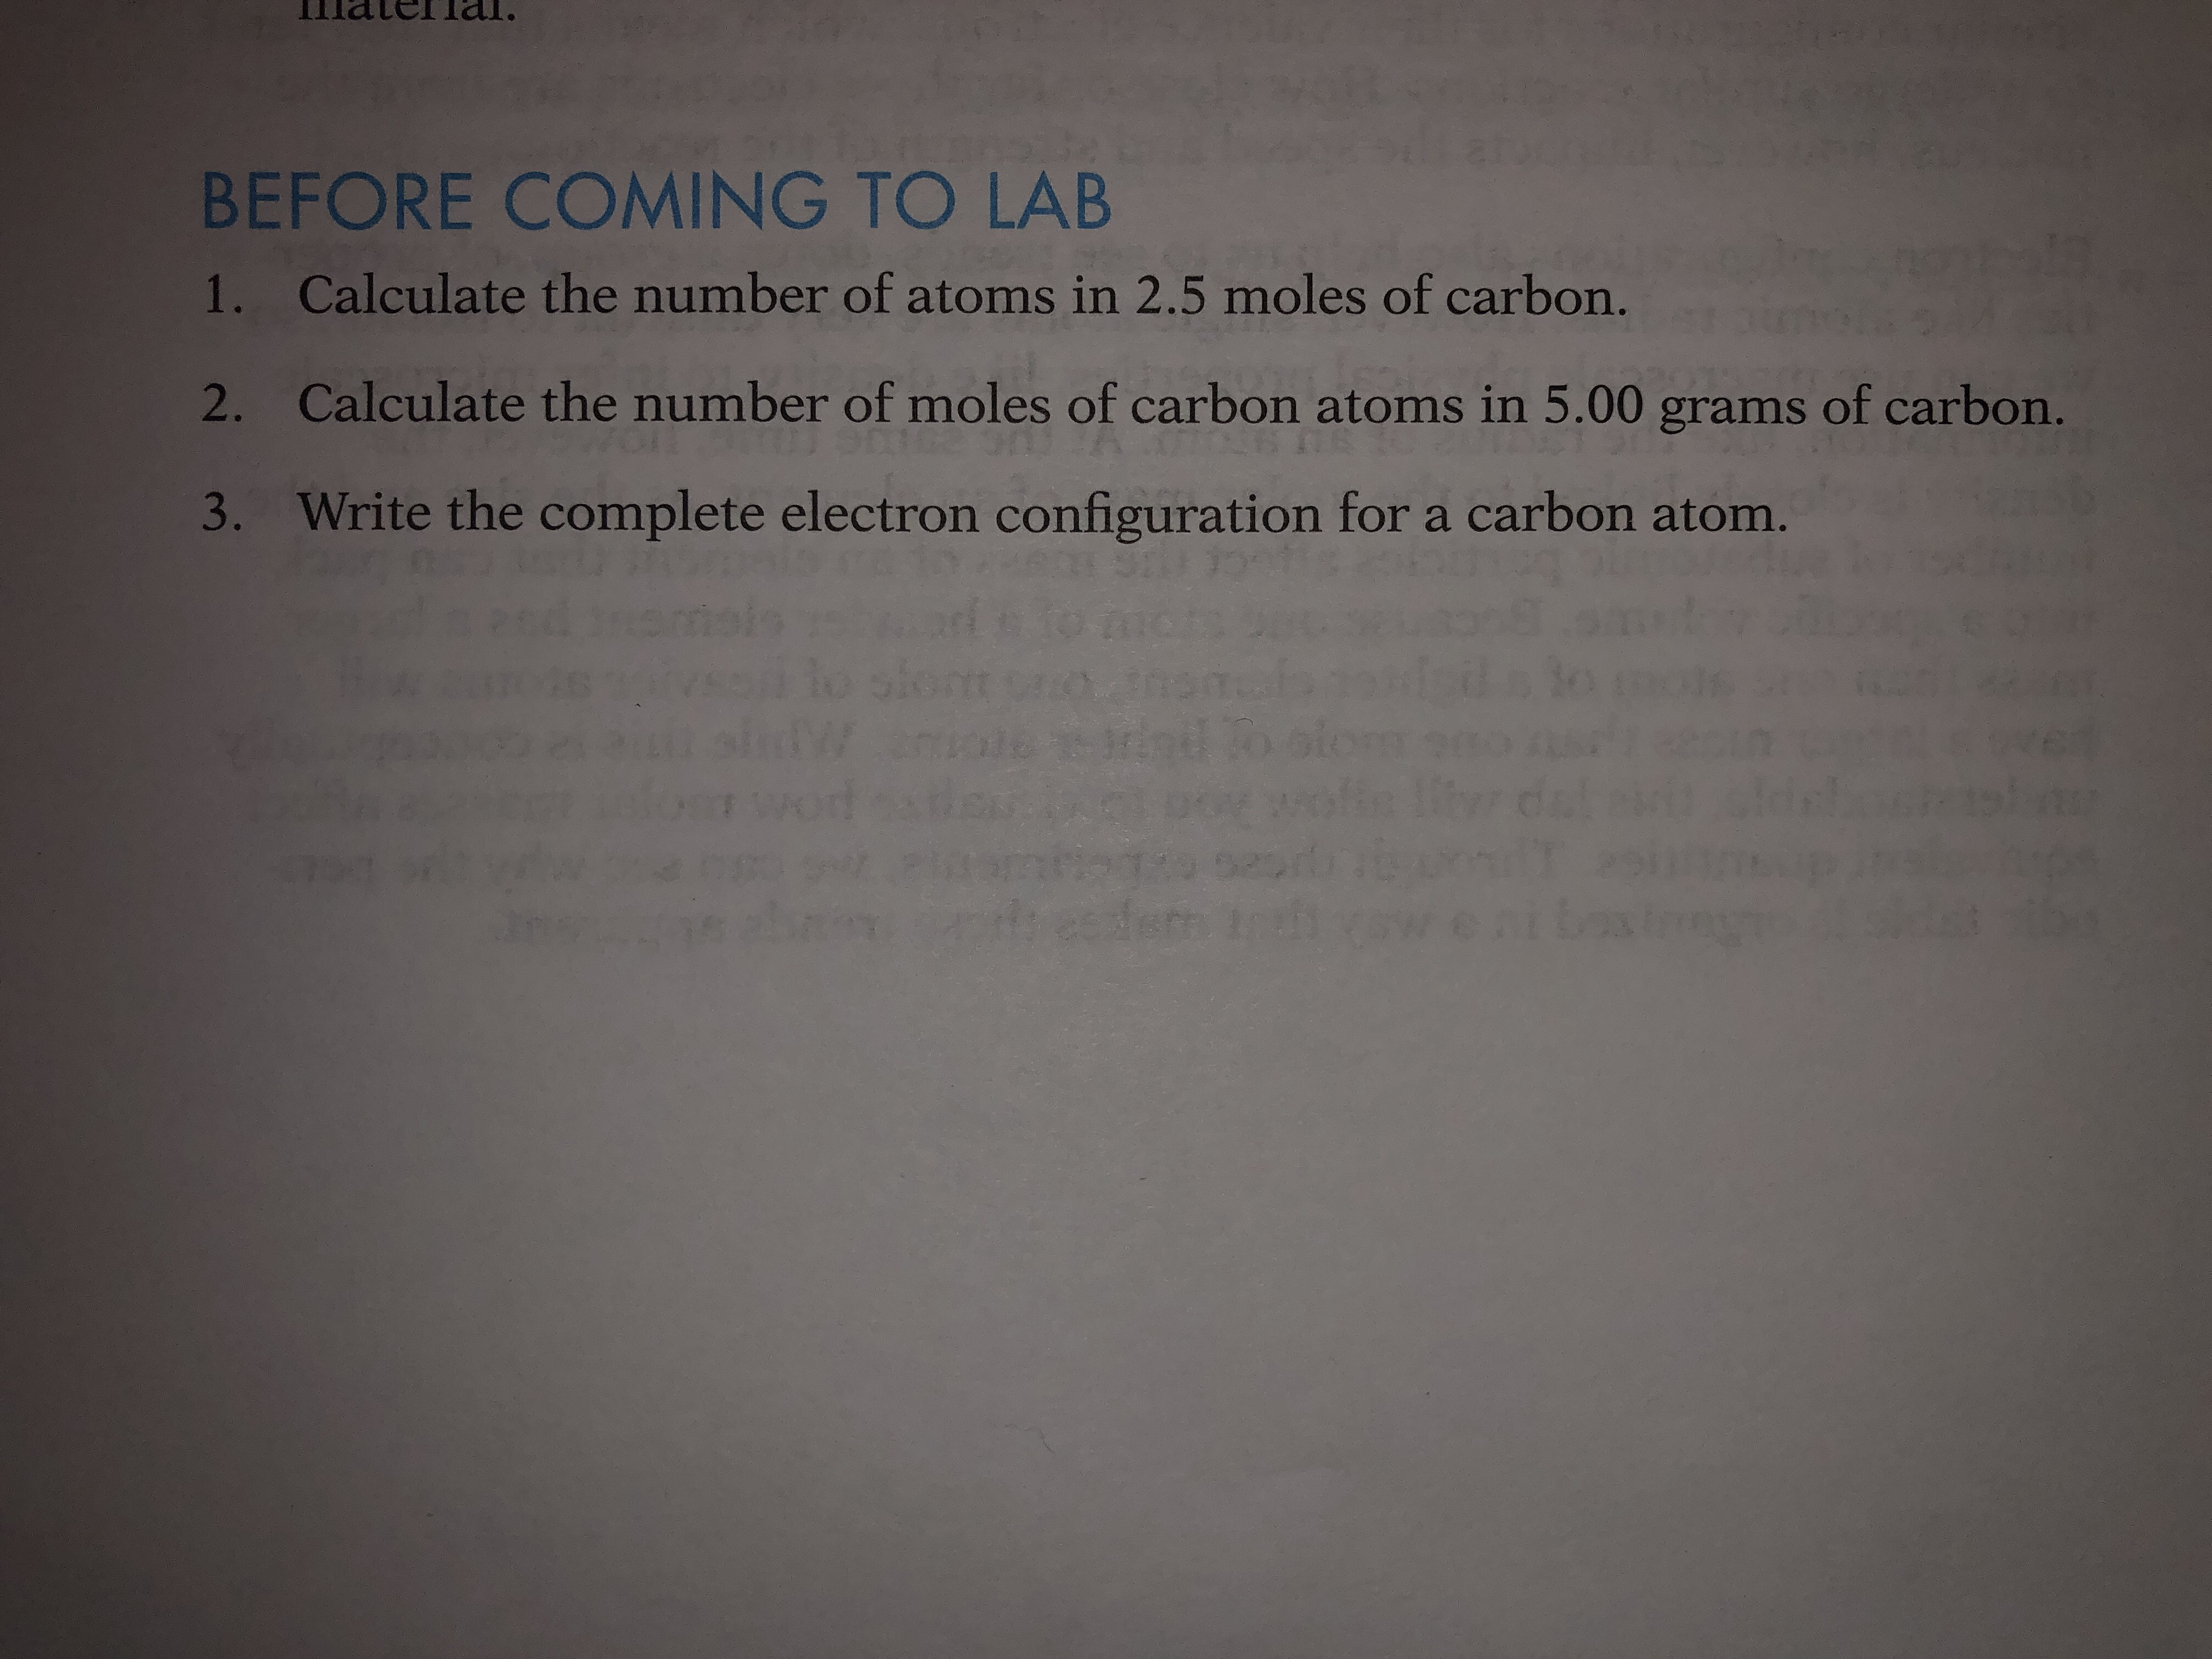 BEFORE COMING TO LAB 1. Calculate the number of atoms in 2.5 moles of carbon. 2. Calculate the number of moles of carbon atoms in 5.00 grams of carbon 3. Write the complete electron configuration for a carbon atom.